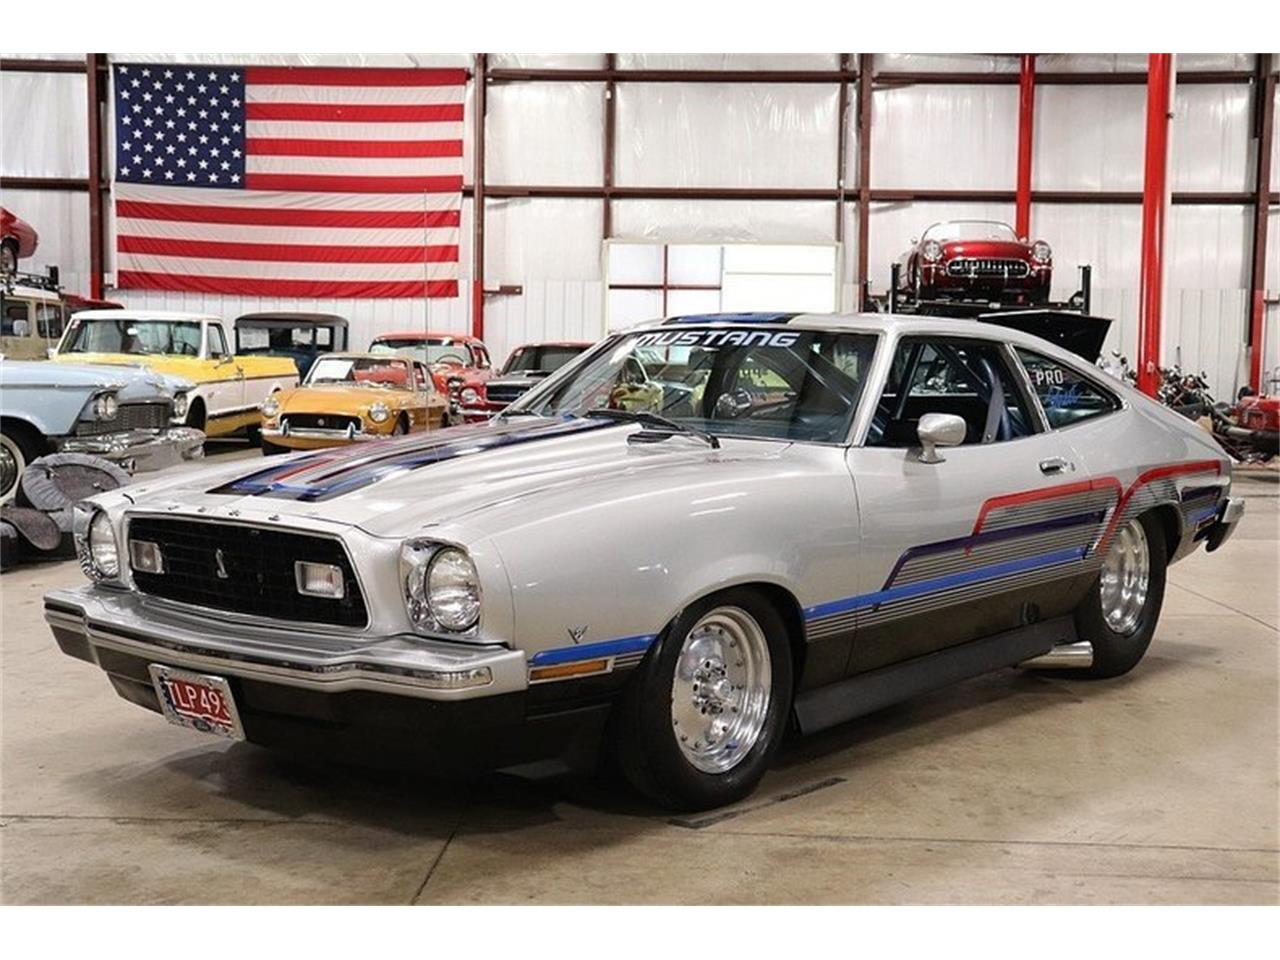 For Sale: 1976 Ford Mustang II Cobra in Kentwood, Michigan